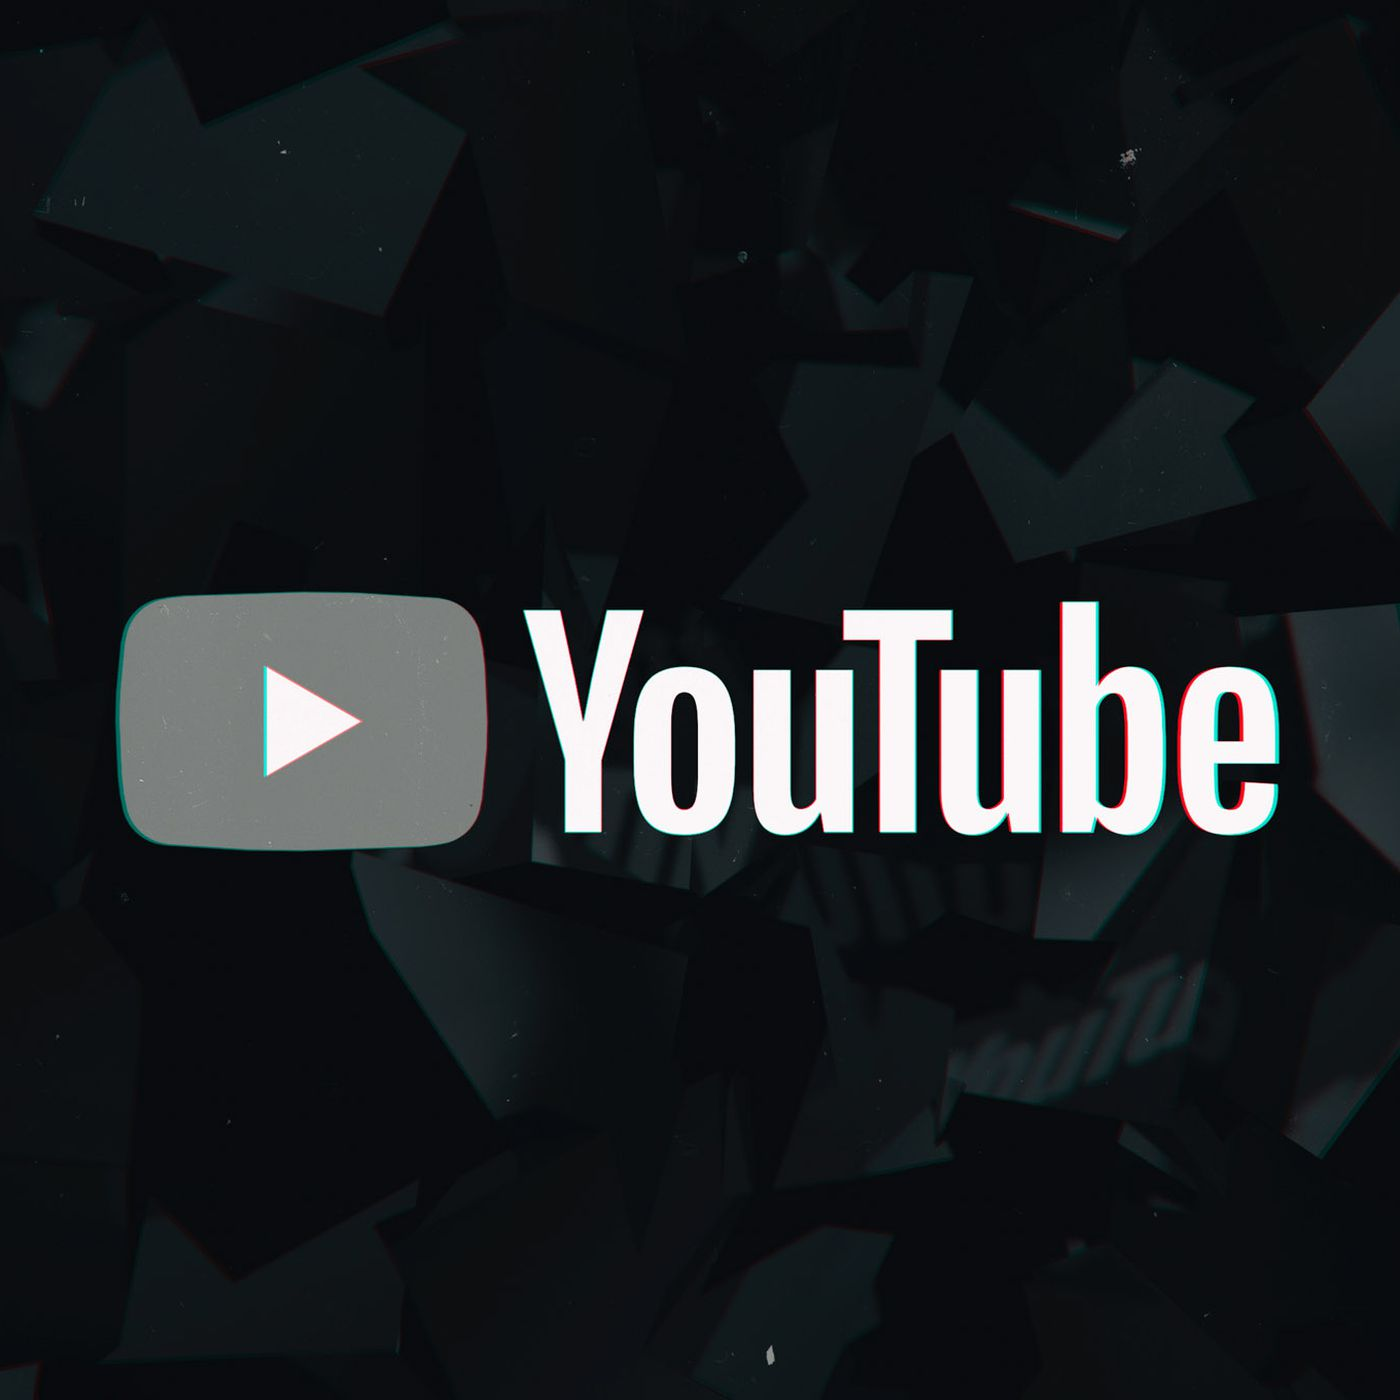 A New Lawsuit Against Youtube Shows How Hard It Is To Get The